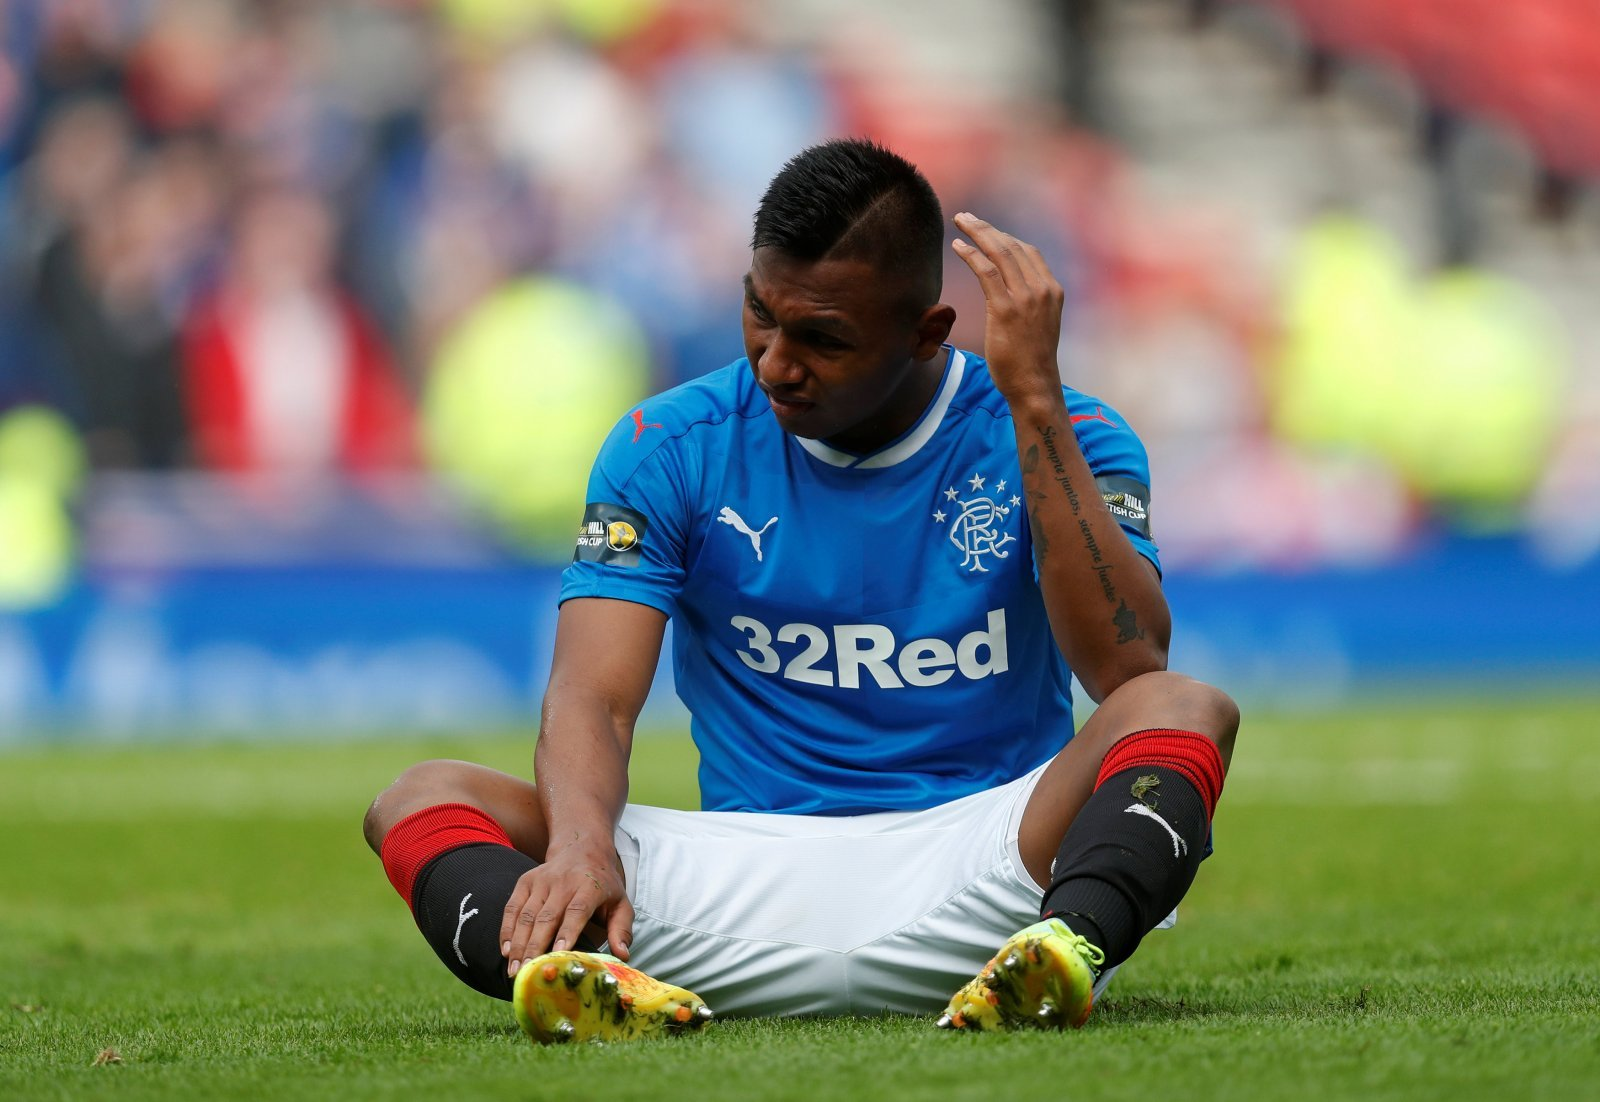 Rangers simply have to retain Alfredo Morelos to call the summer a success